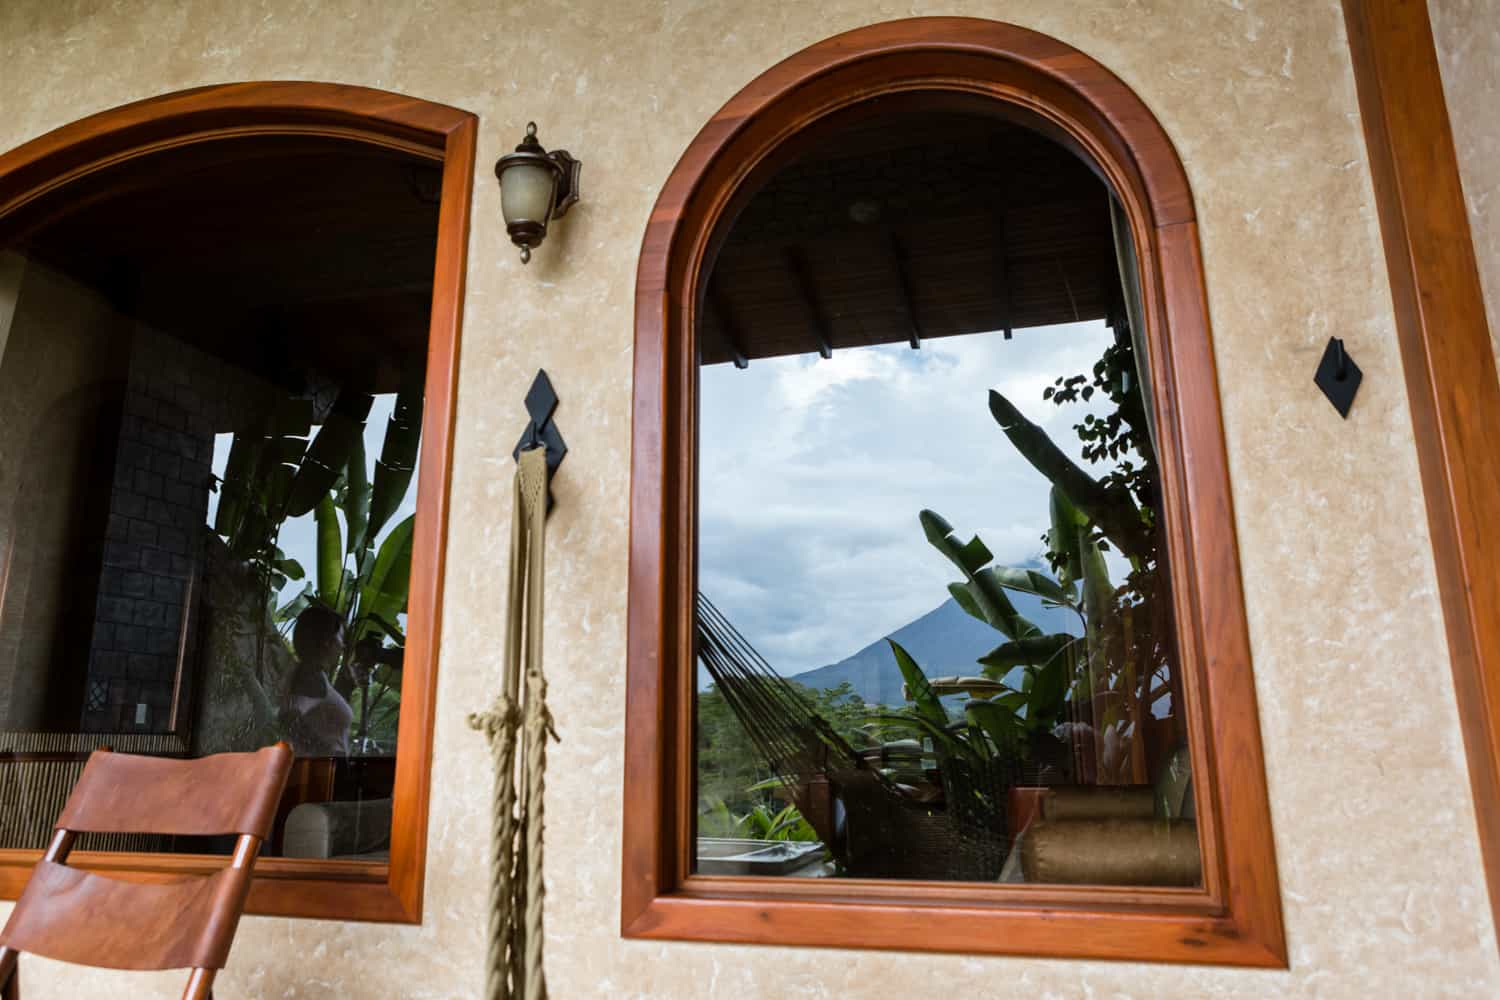 Reflection of Arenal Volcano in balcony windows.